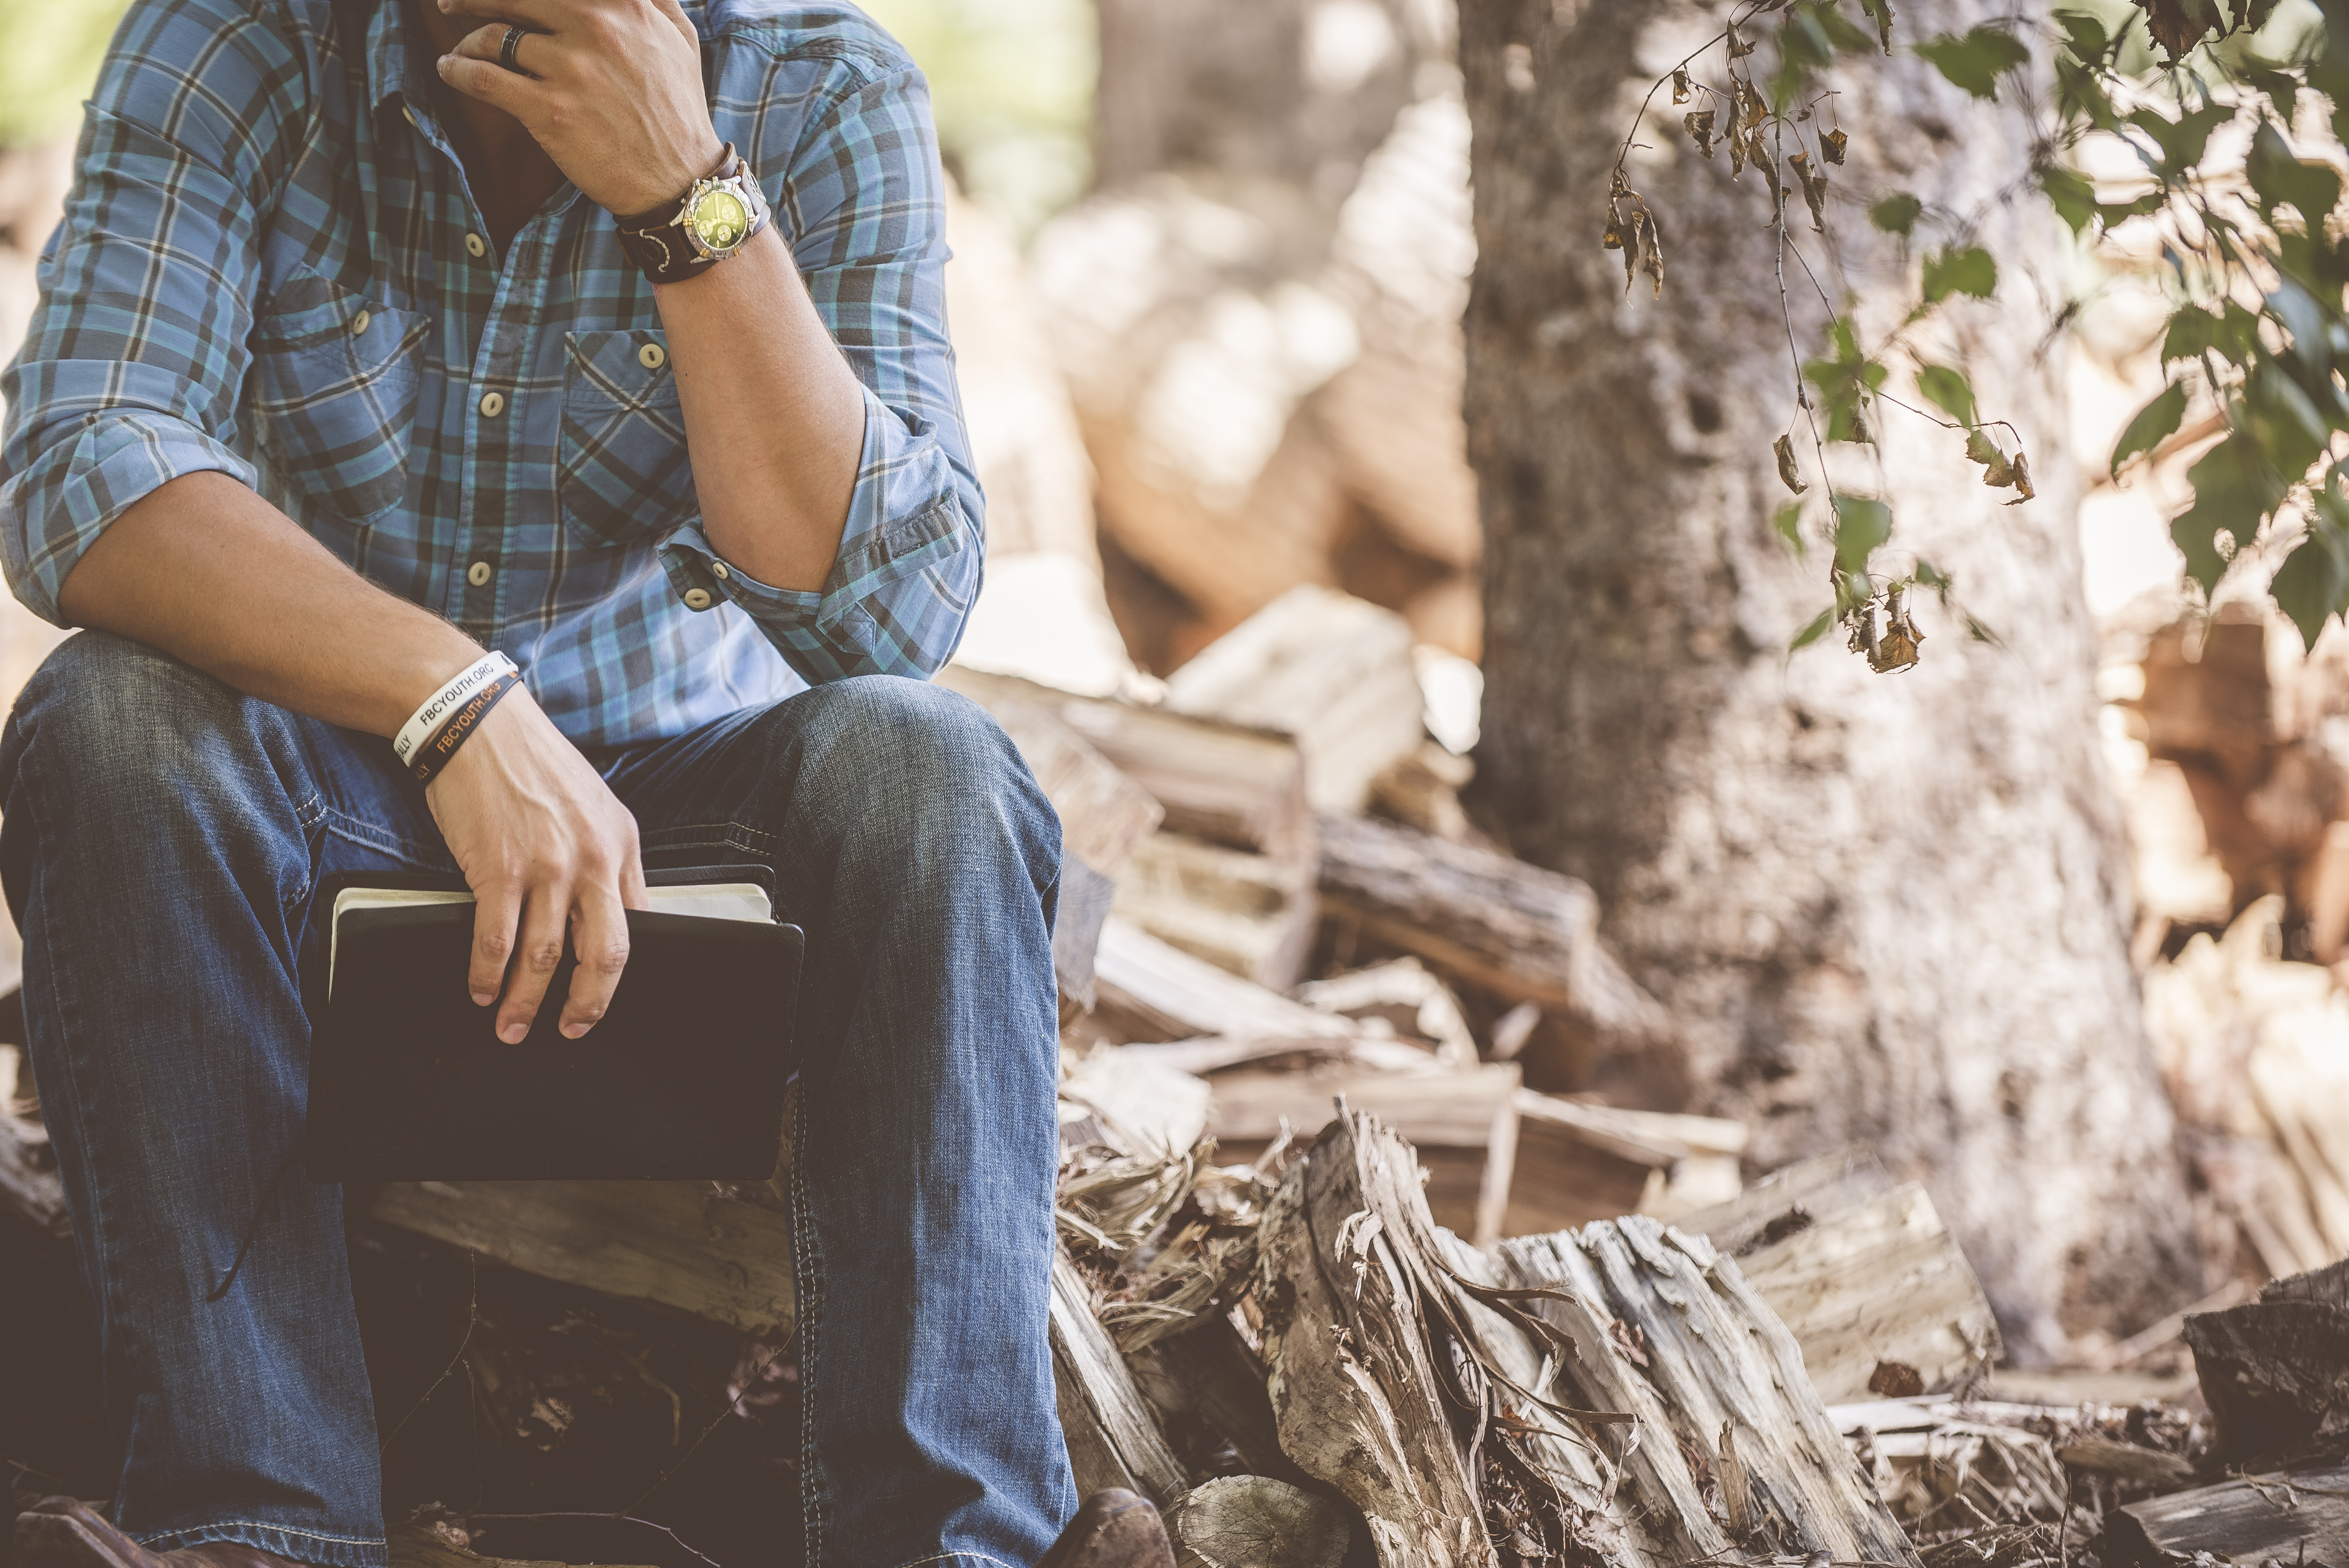 5 reasons men should go on missions trips